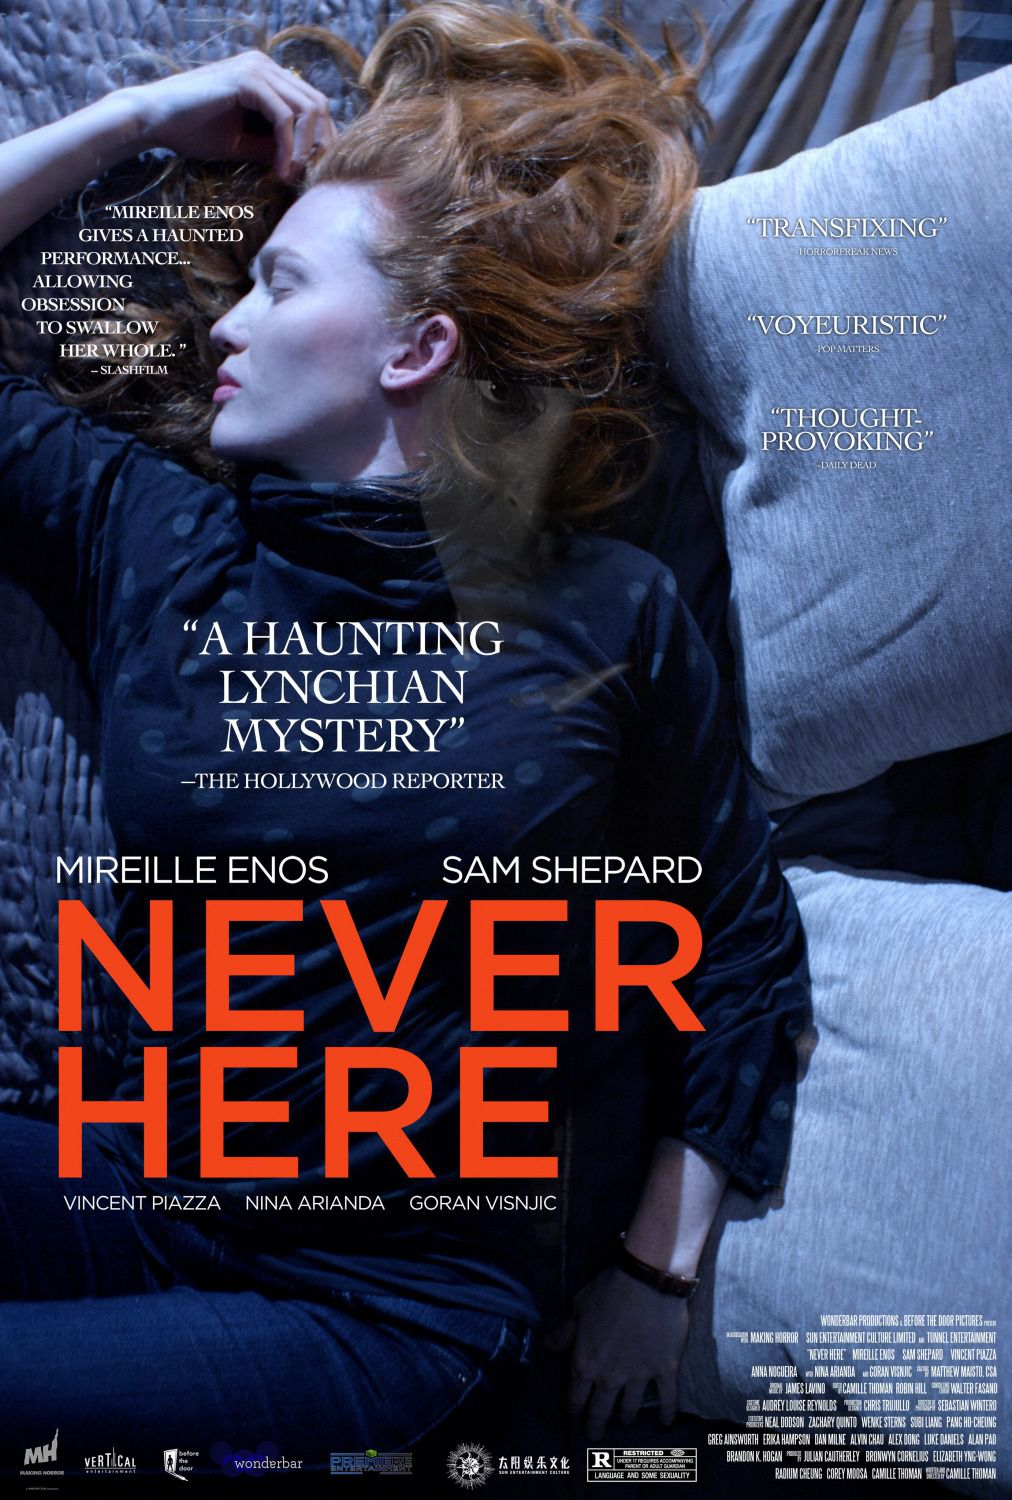 Never here - film poster 2017 - Mireille Enos - San Shepard